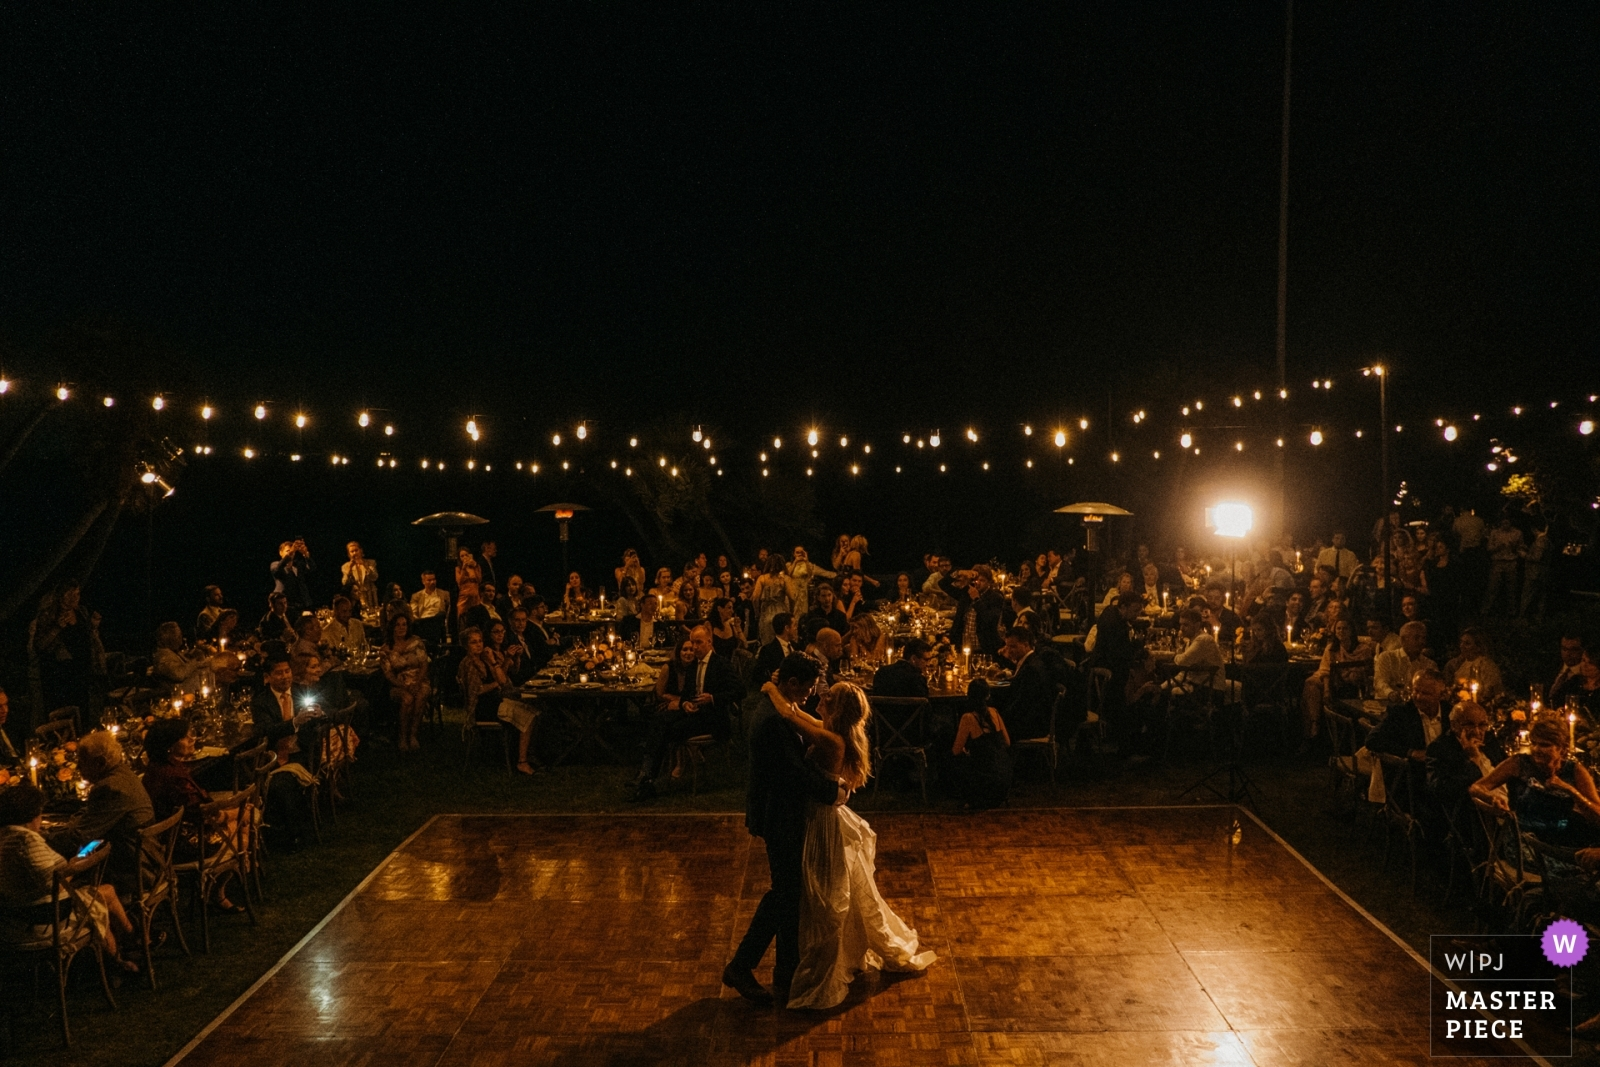 The bride and groom dance for the first time as a married couple in front of their guests. - Los Angeles, California - Southern Wedding Photography -  | Adamson House, Malibu, California